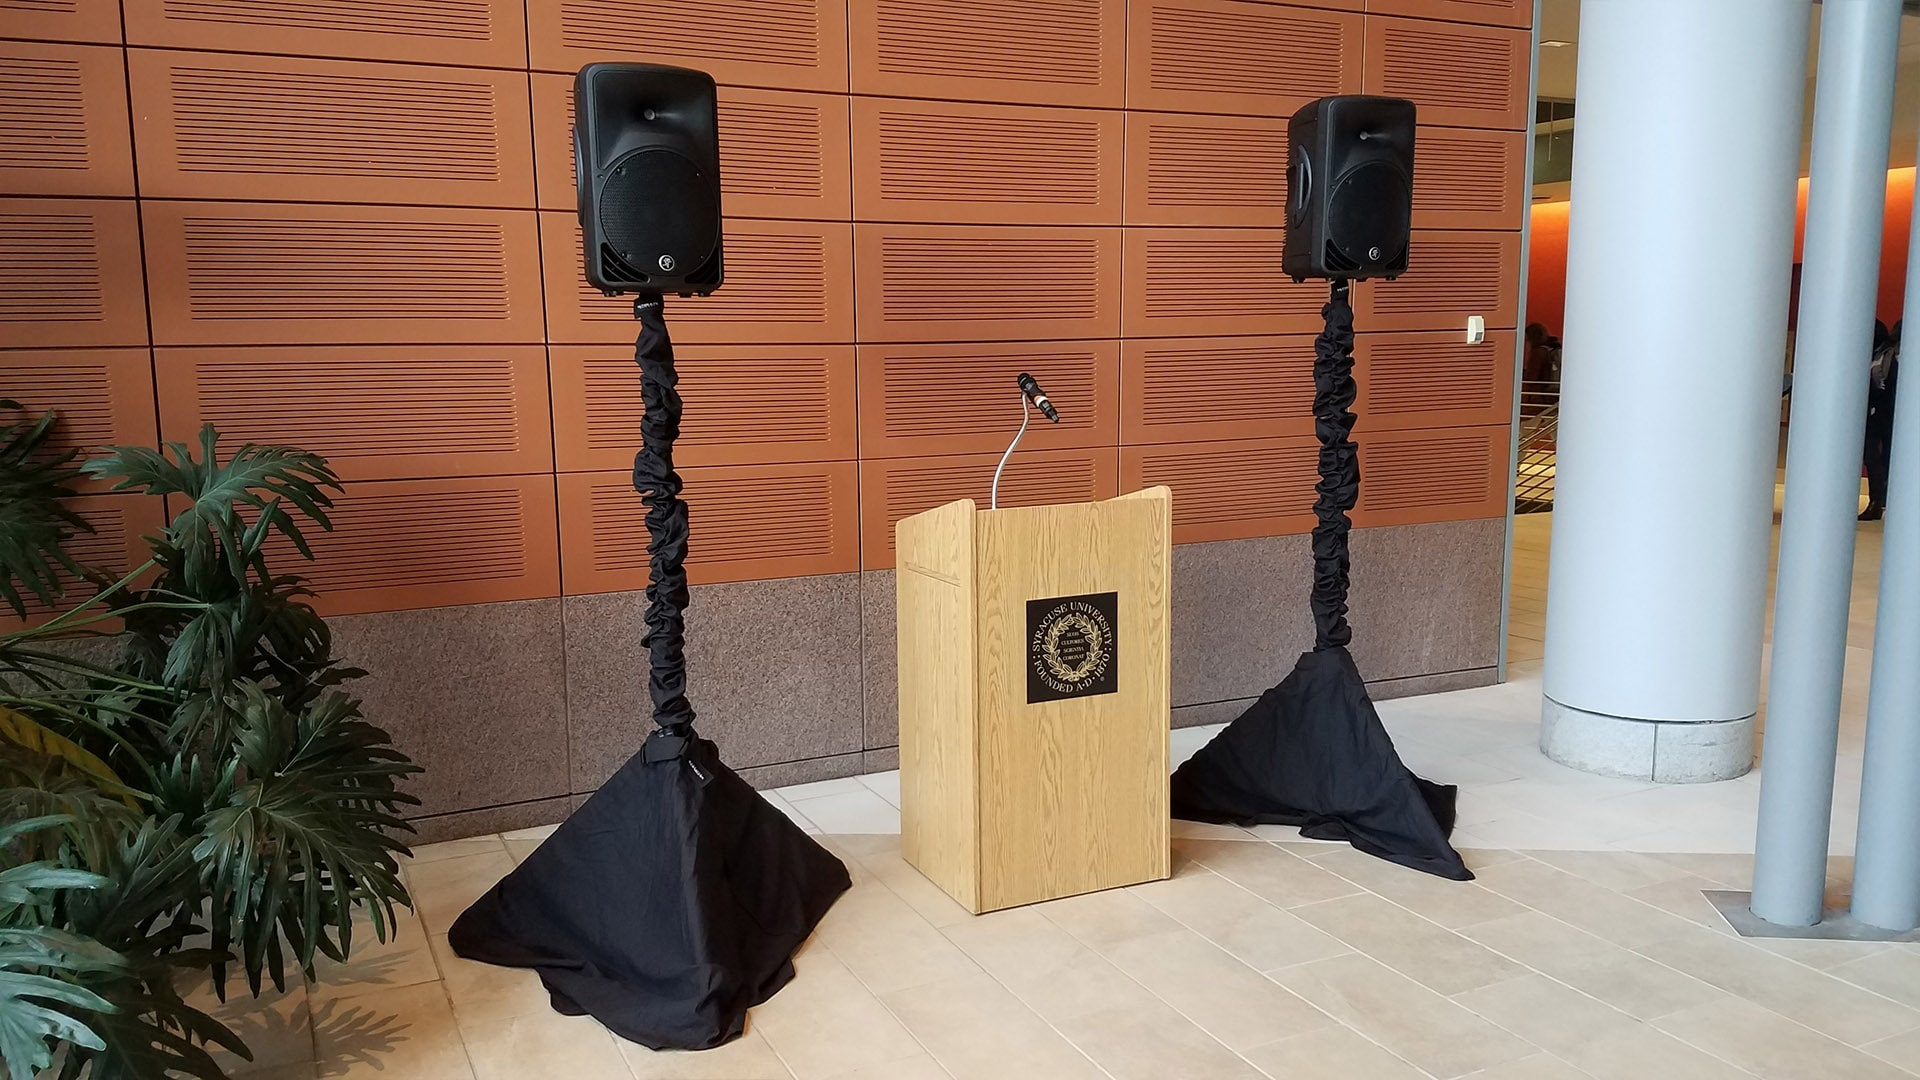 Public Address System with 2 speakers on stands and a podium with a wireless microphone attached